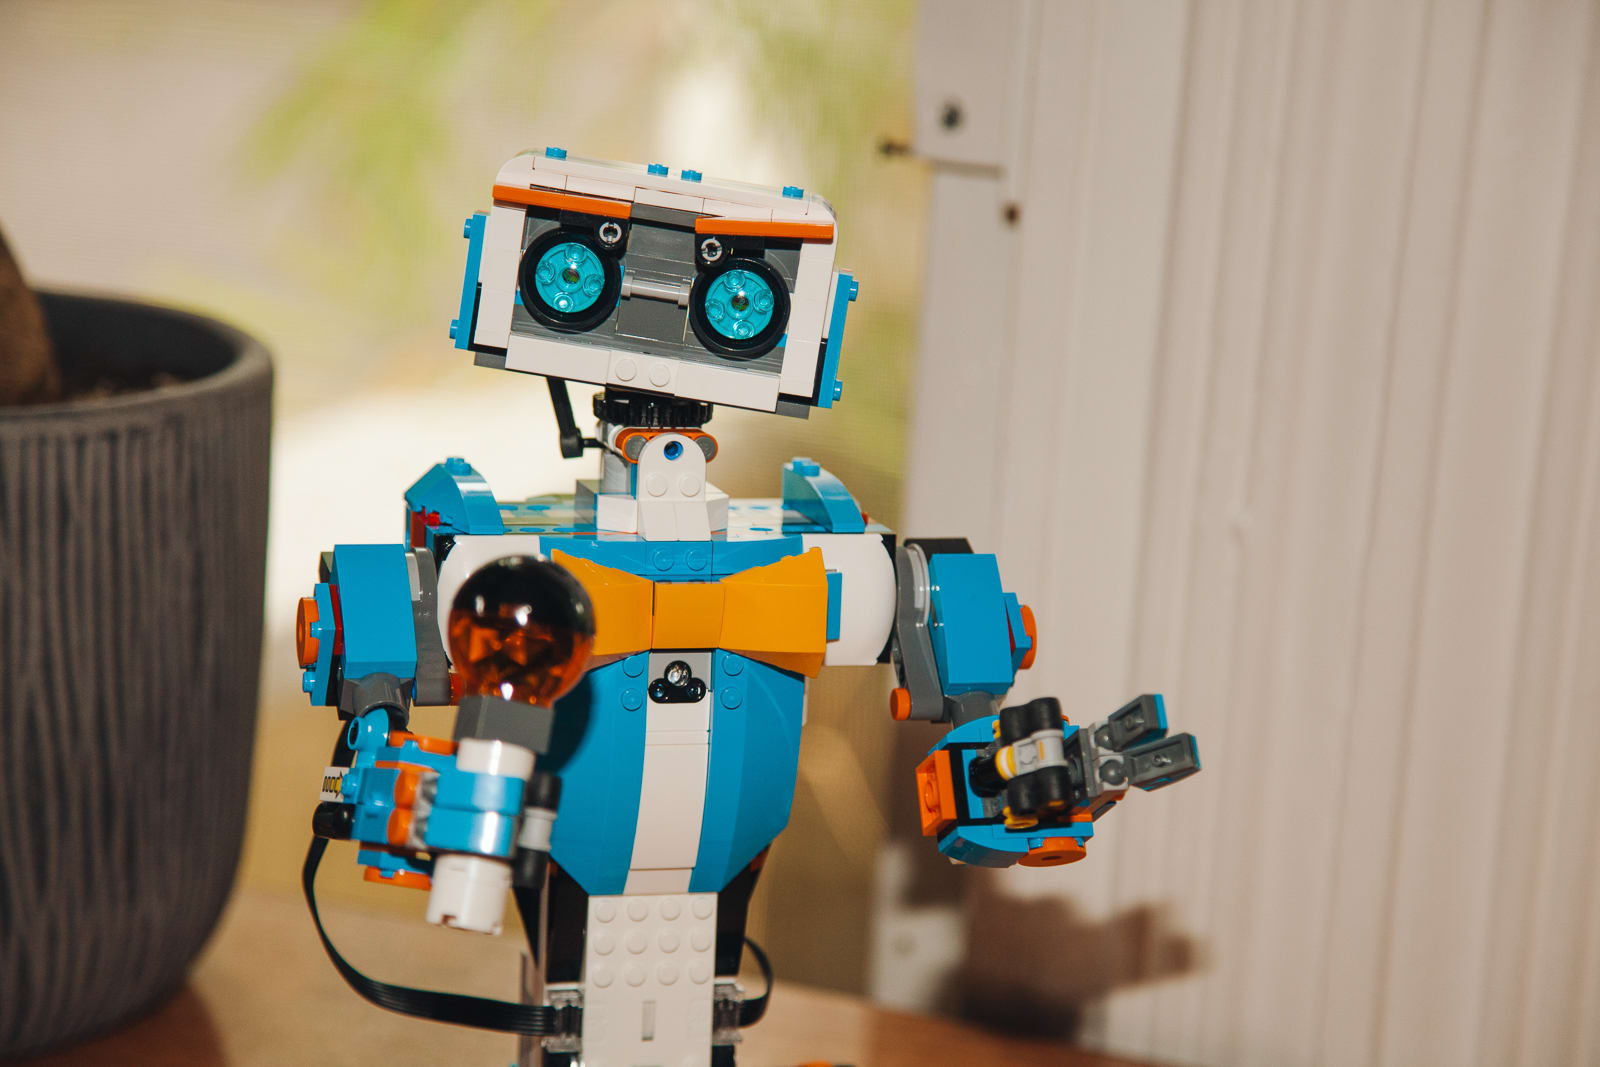 The best robotics kits for beginners